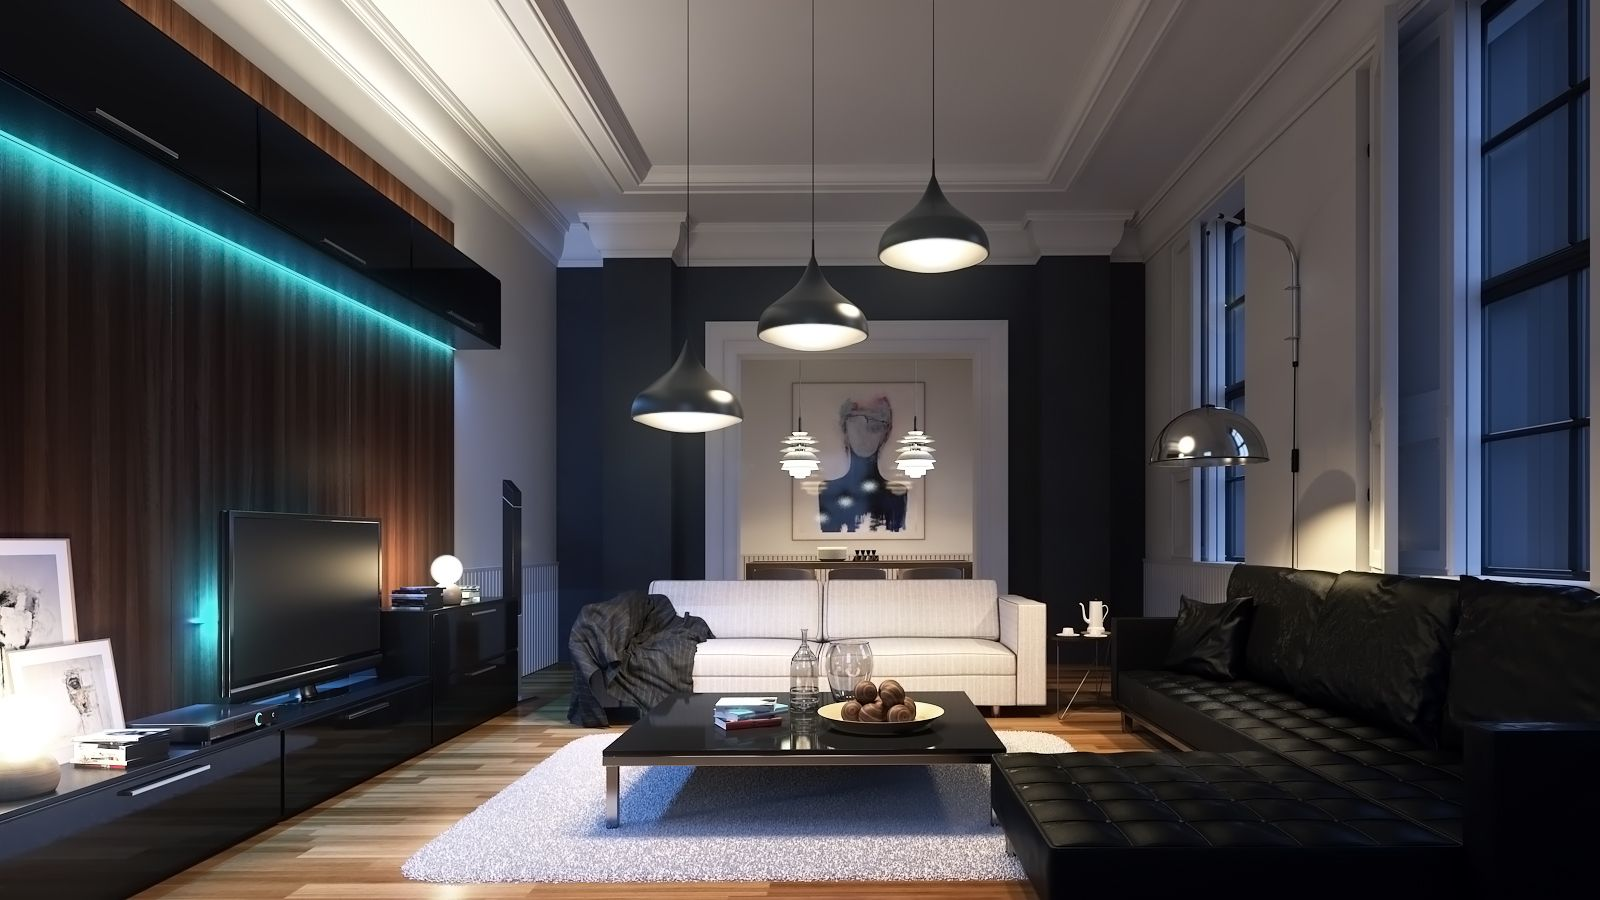 3ds max vray interior rendering google search for Living room 3ds max